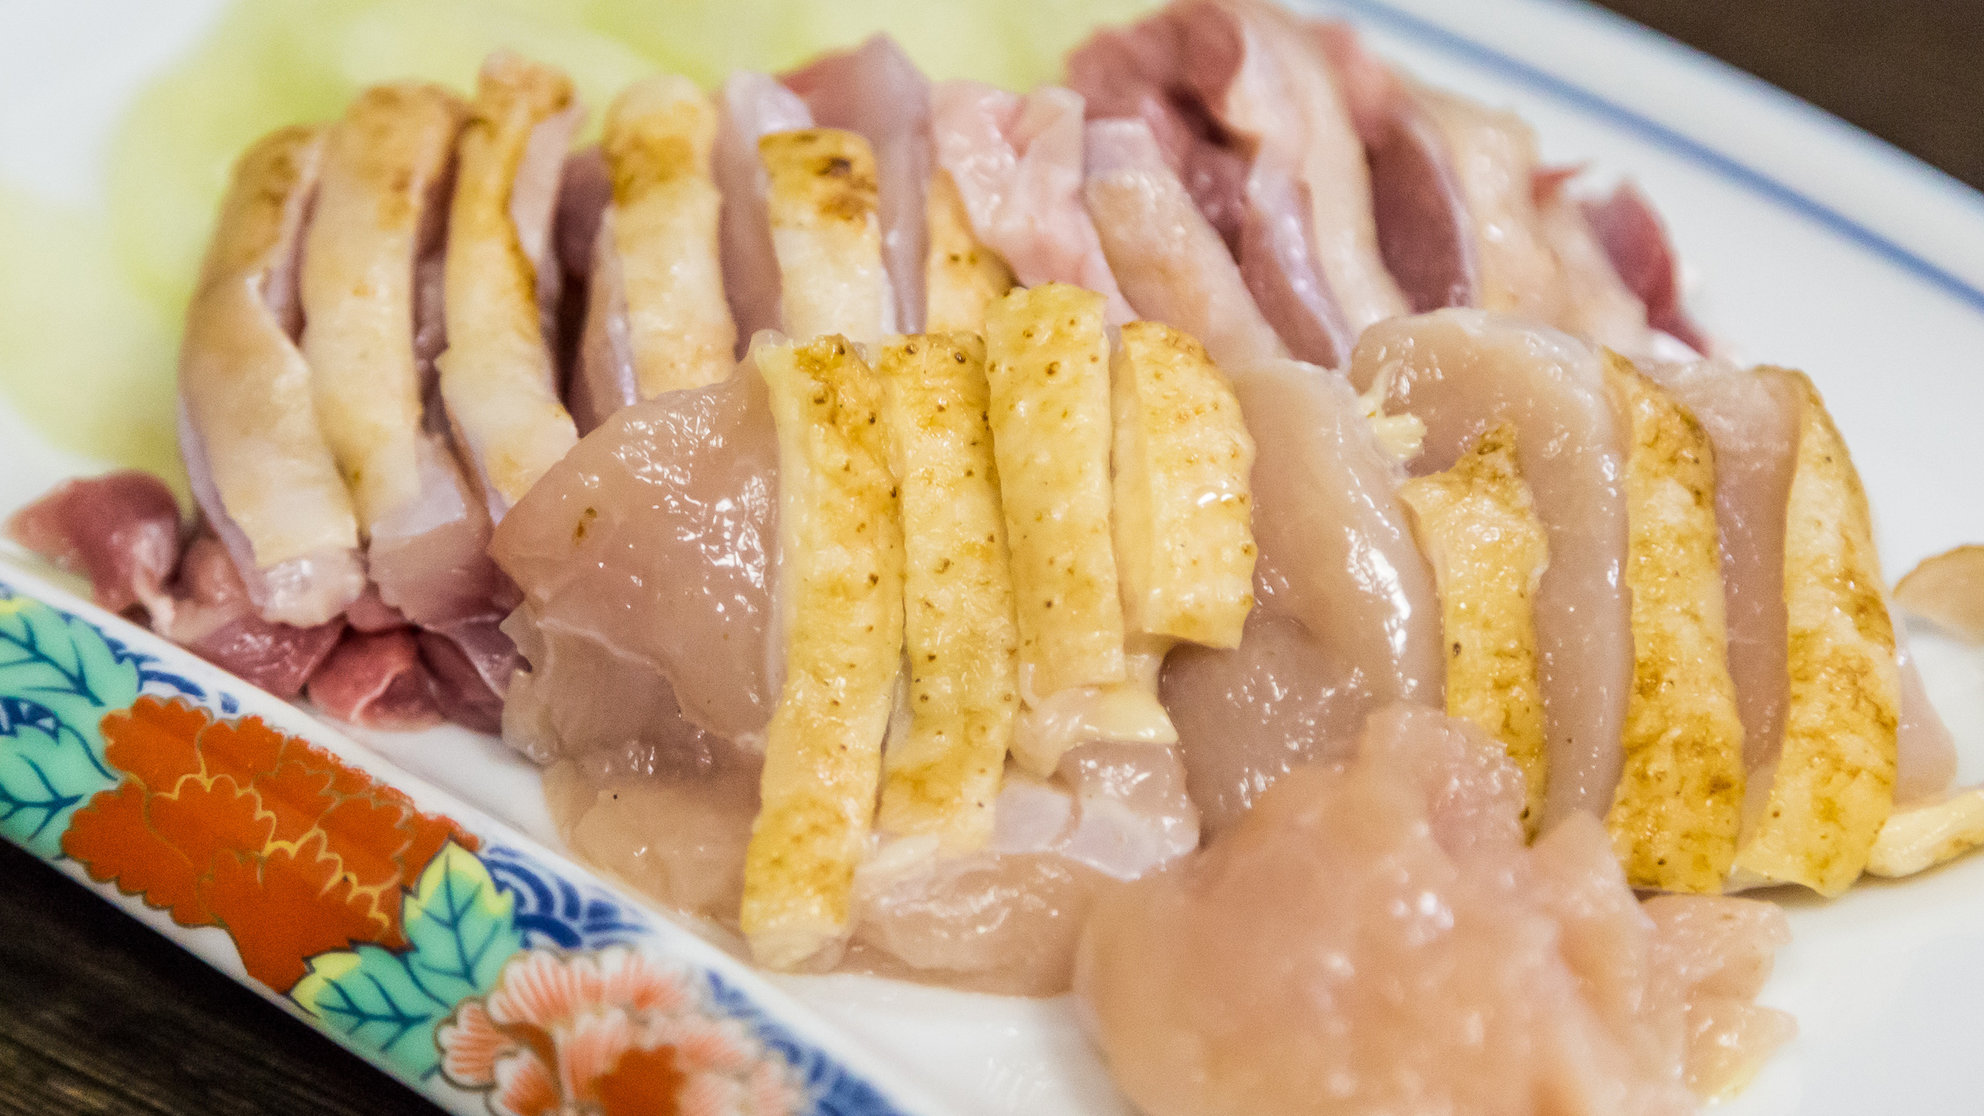 Is It Safe To Eat Chicken Sashimi?